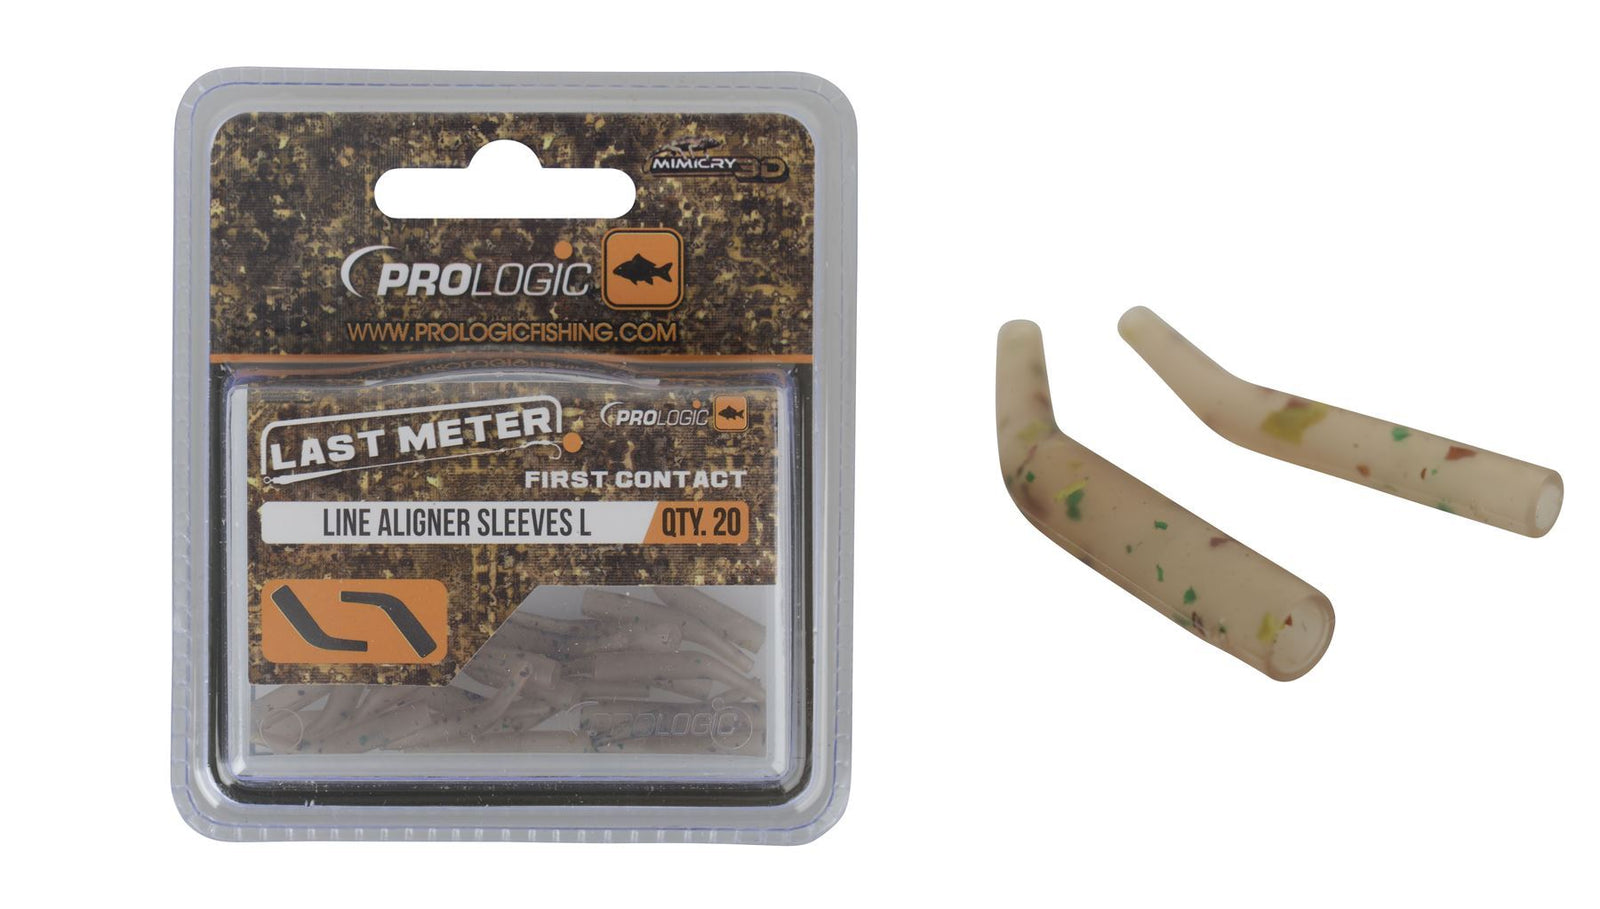 Prologic LM Mimicry Line Aligner Sleeves M 20pcs - reid outdoors